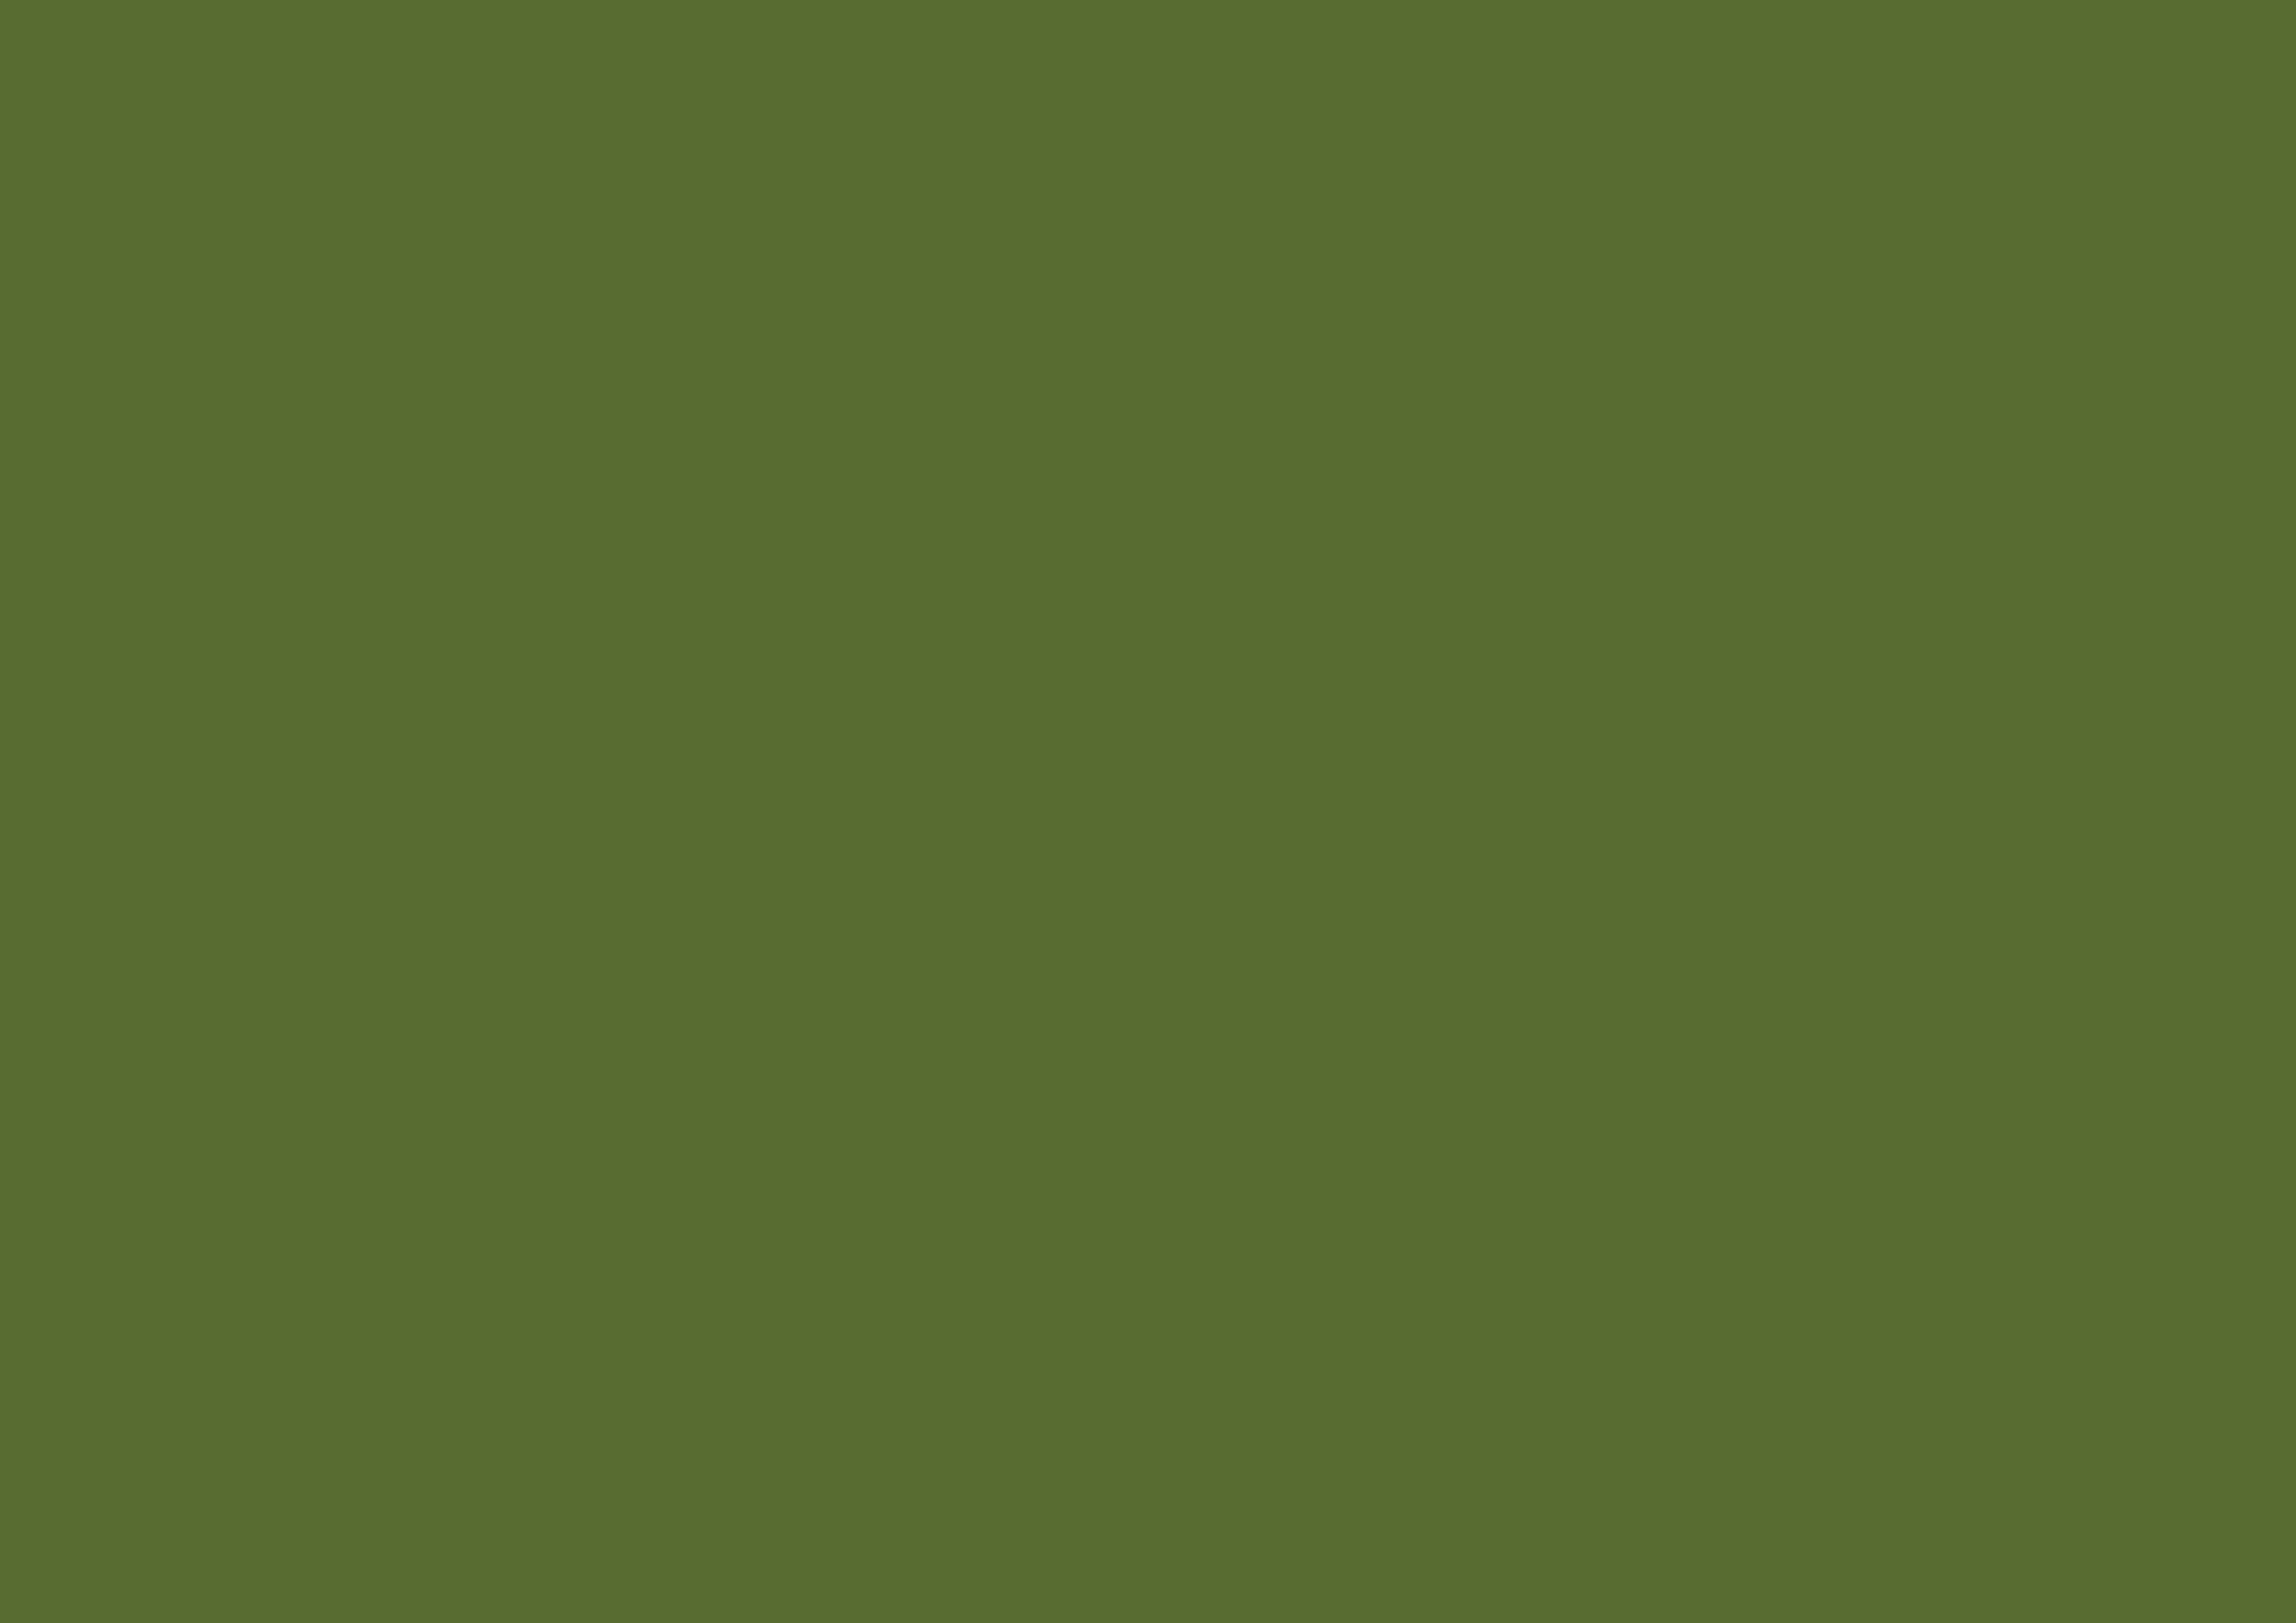 3508x2480 Dark Olive Green Solid Color Background